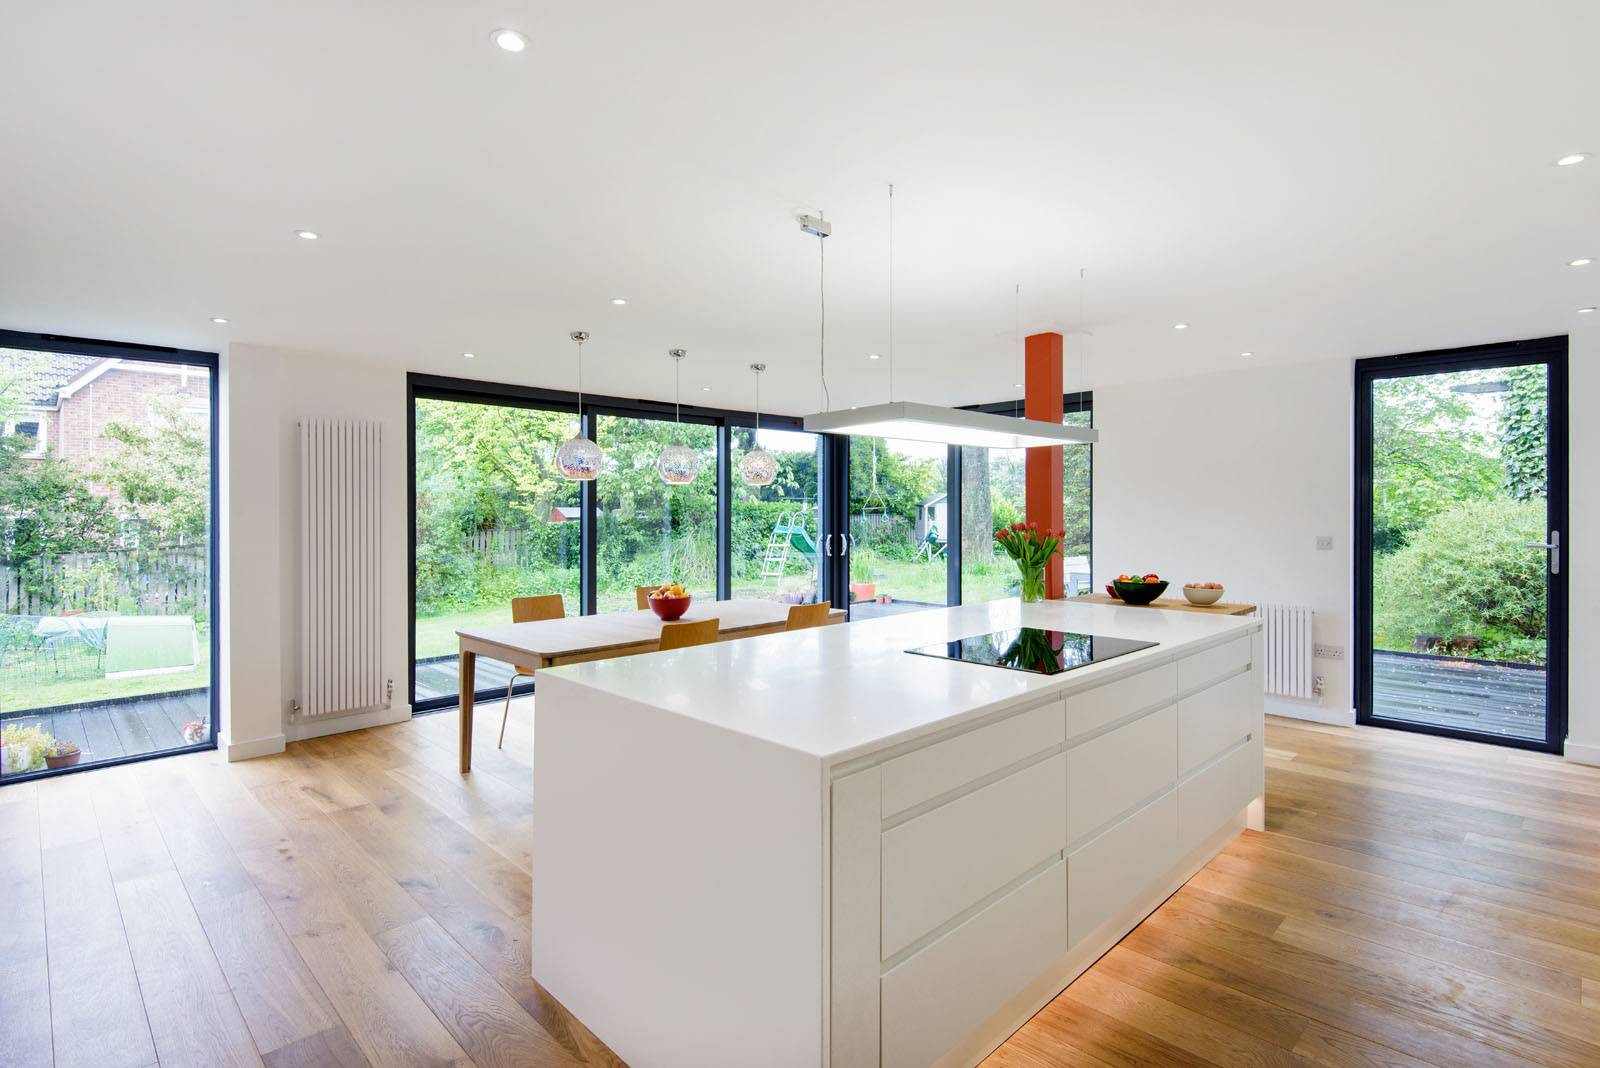 contemporary-kitchen-extension-image1-ru